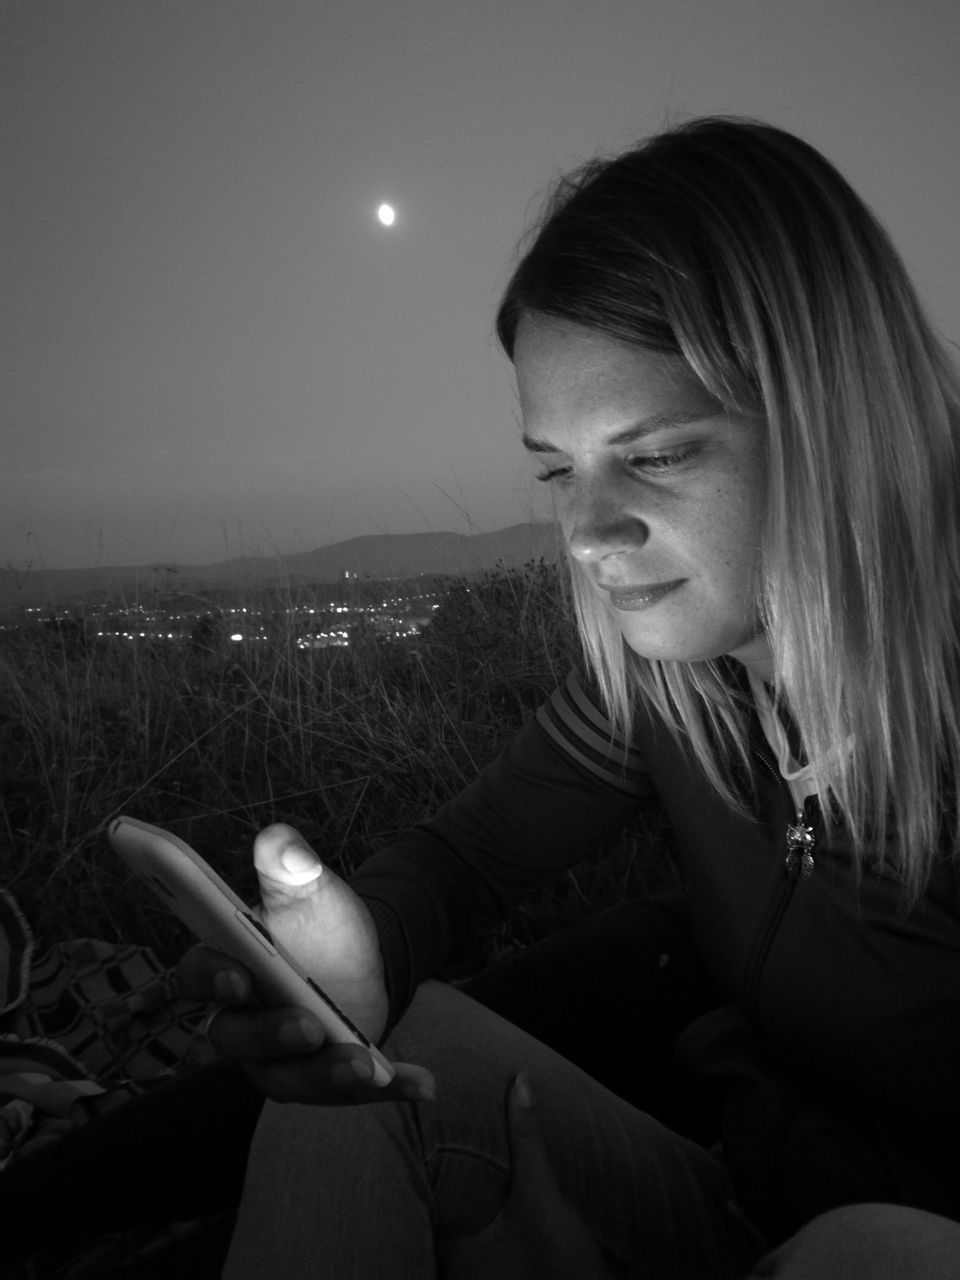 real people, one person, sitting, moon, leisure activity, lifestyles, young women, night, young adult, illuminated, outdoors, nature, close-up, blond hair, sky